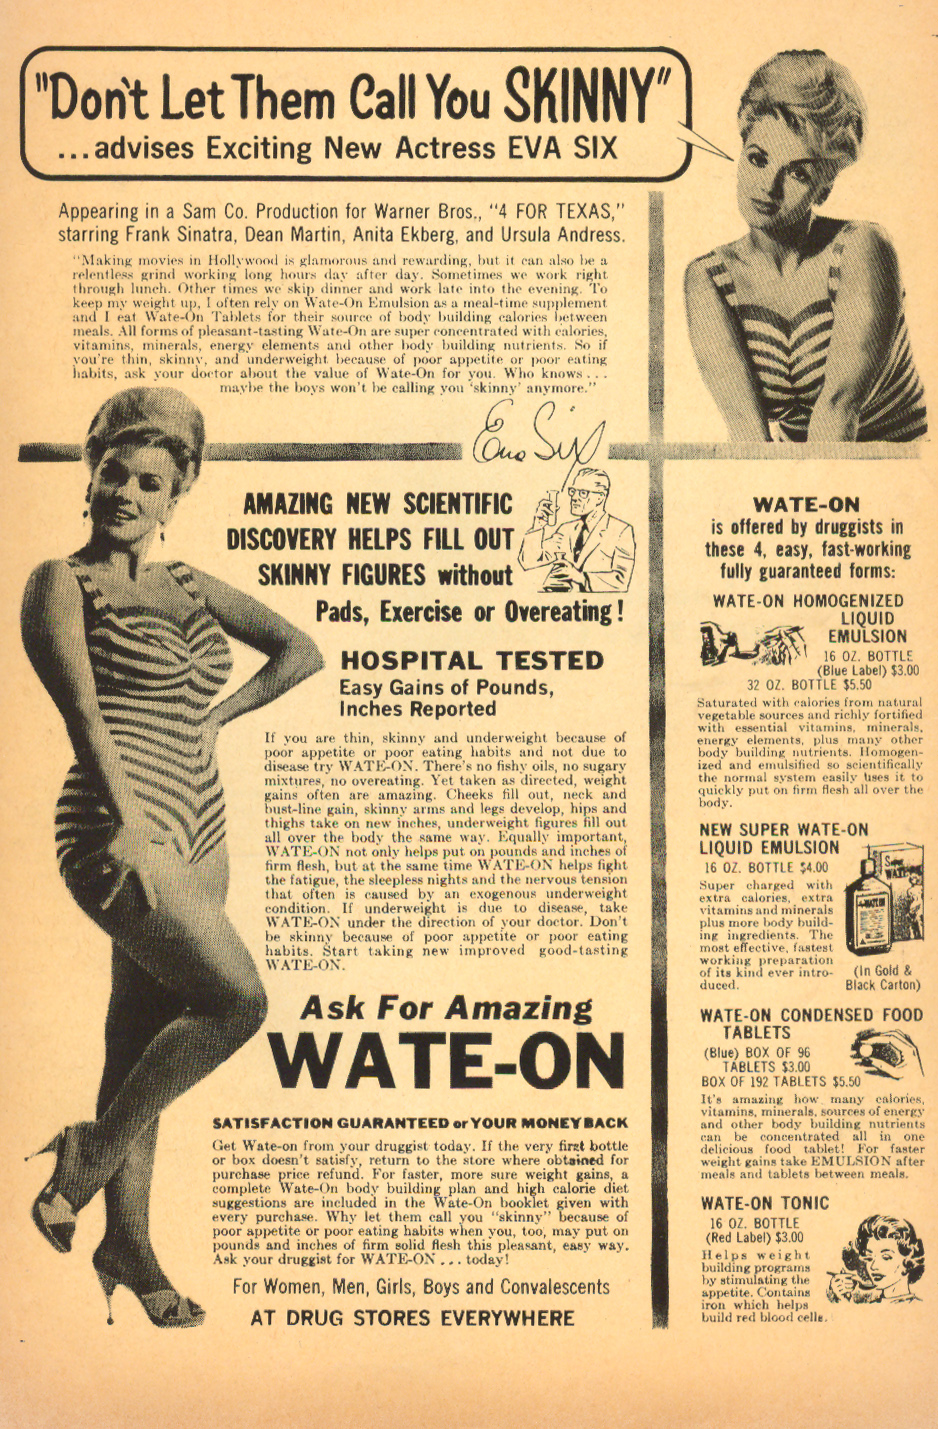 Vintage diet aid advertisement wate-on tonic